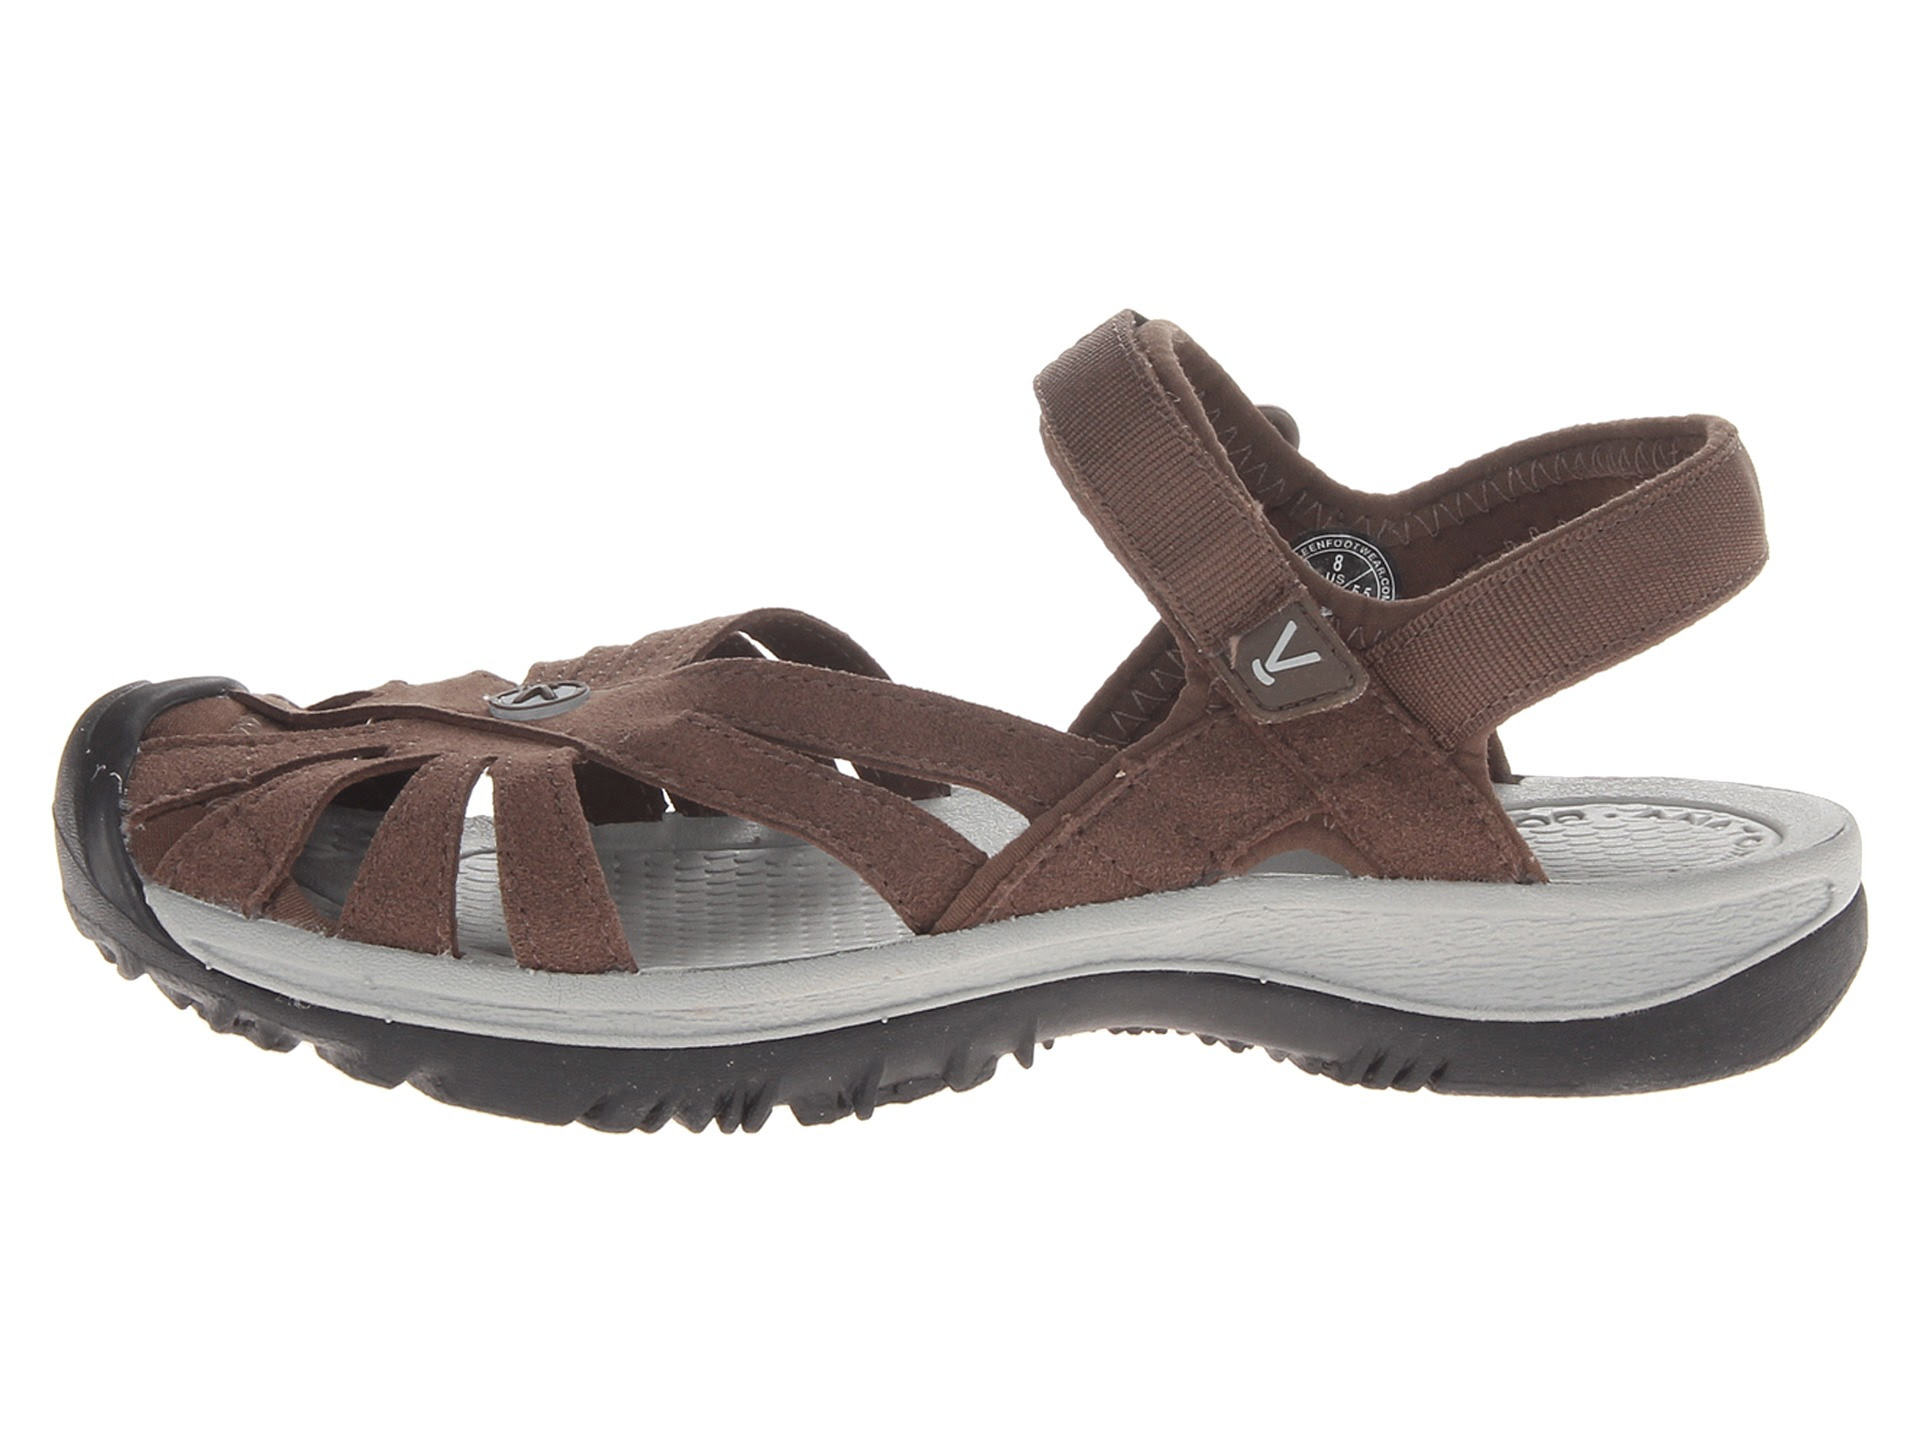 Keens Sandals January 2014